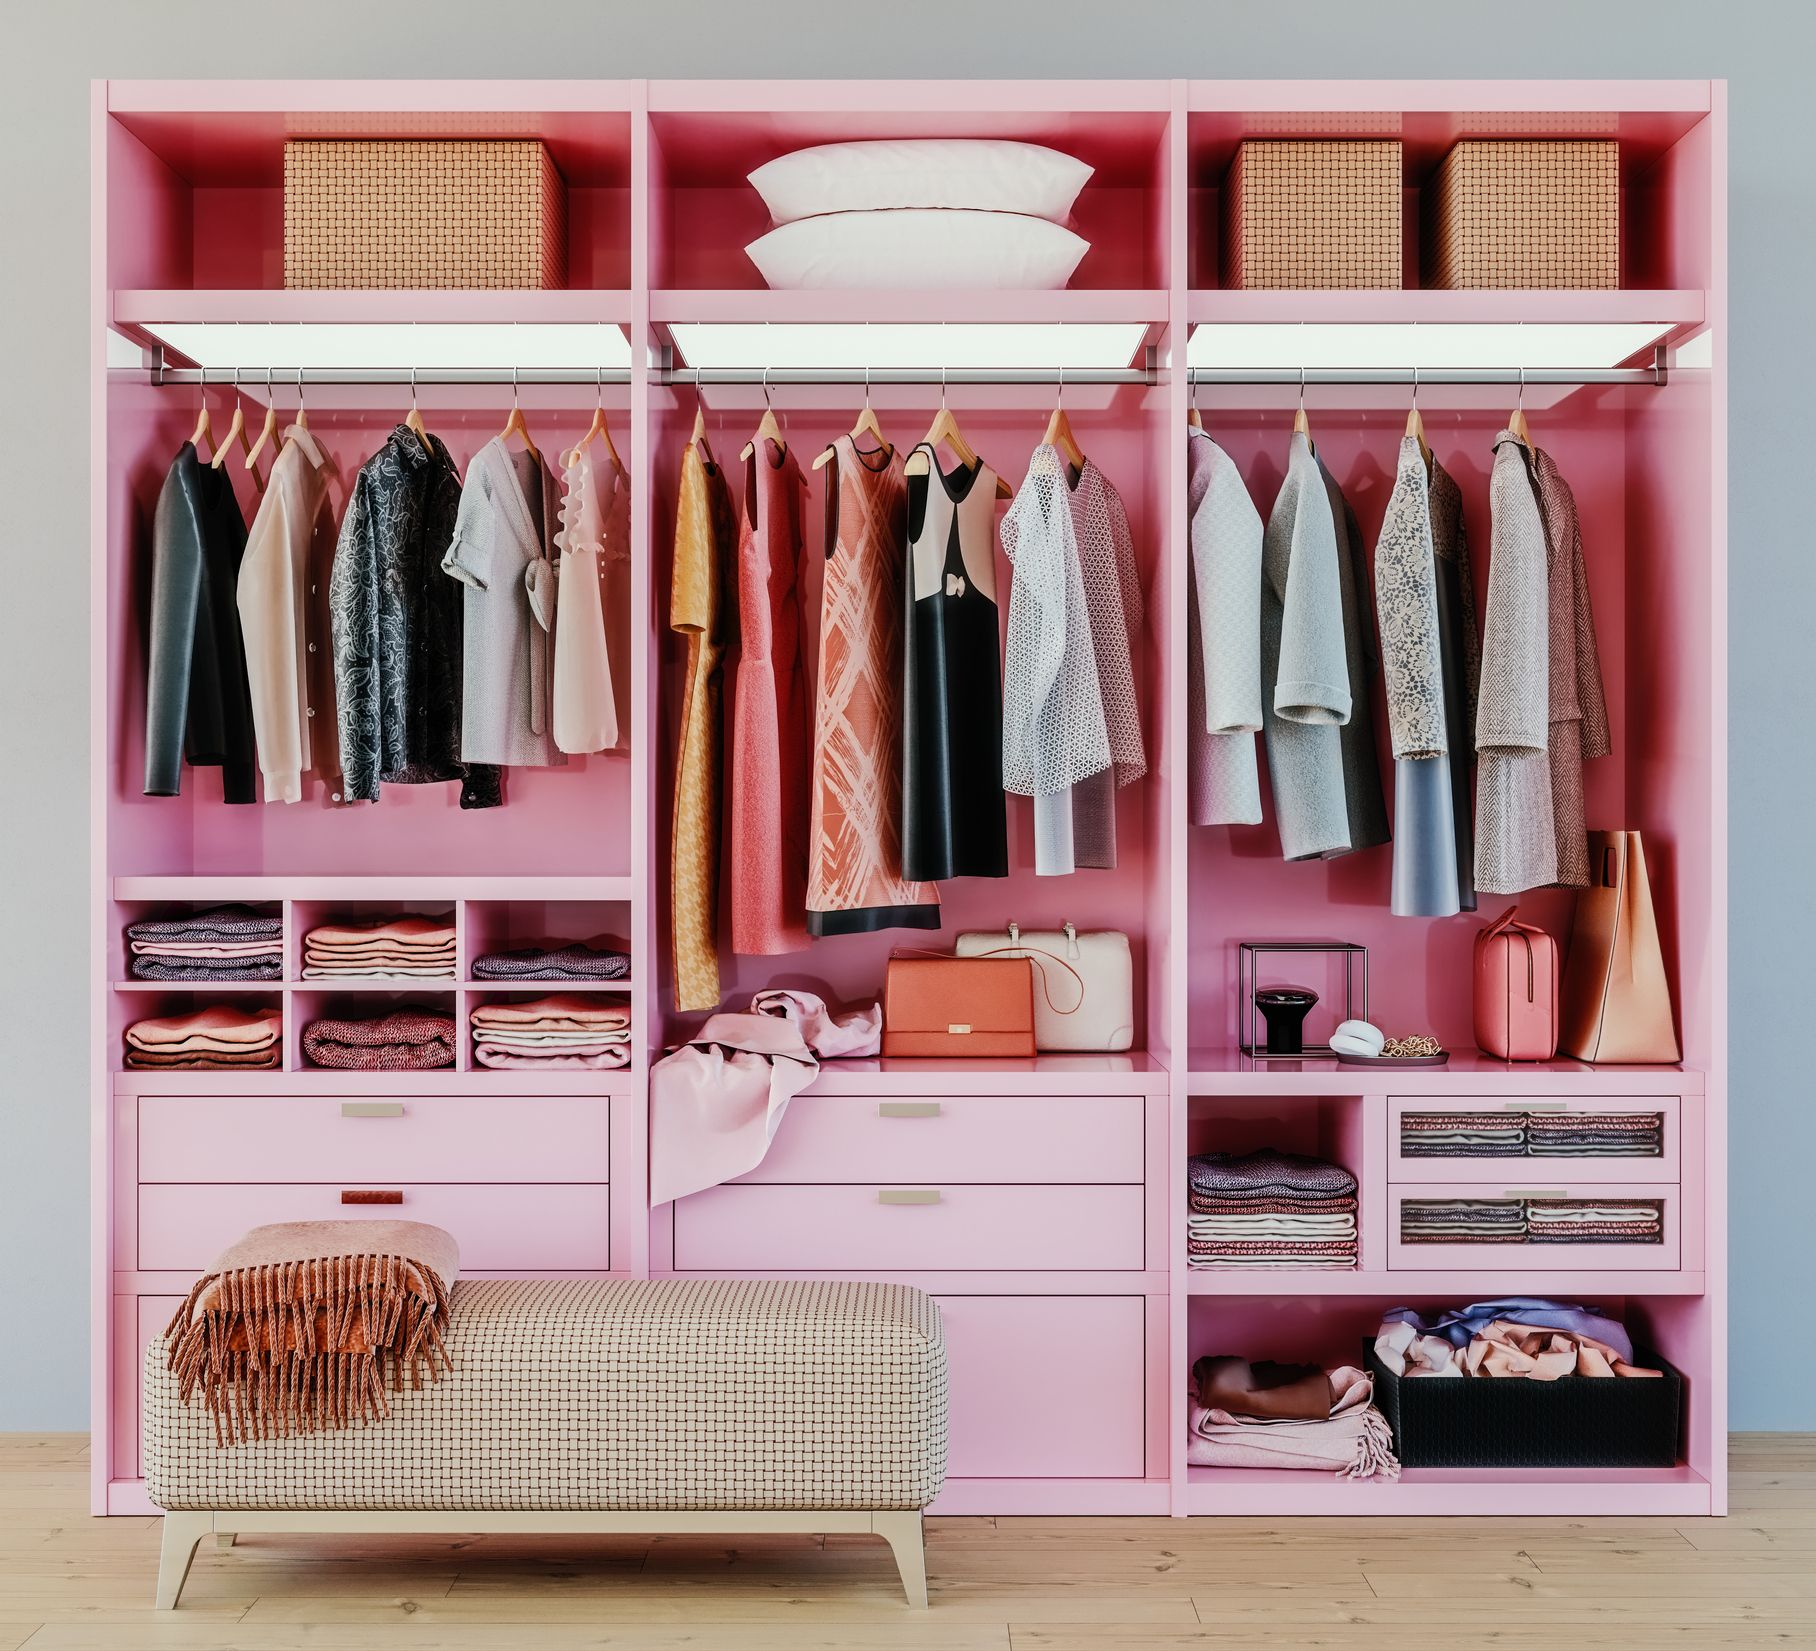 How to Choose the Best Closet Lighting for Any Space, According to Experts